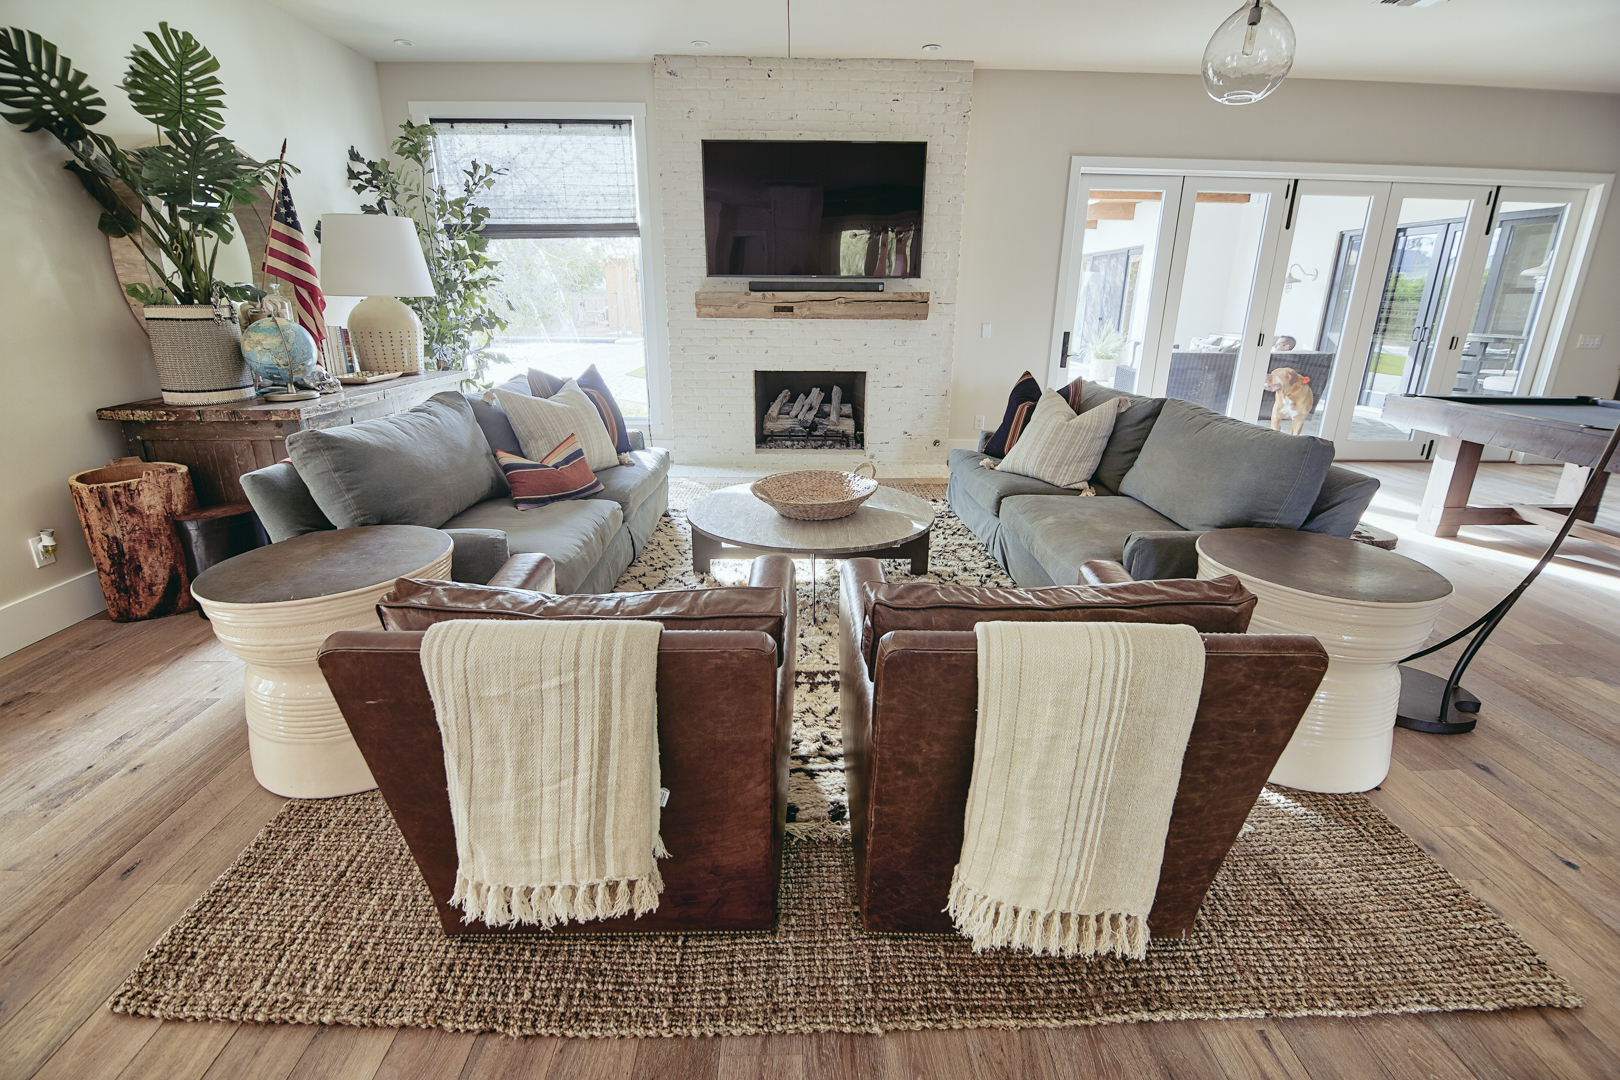 Bungalow Furniture & Accessories - Scottsdale, AZ - Living Room